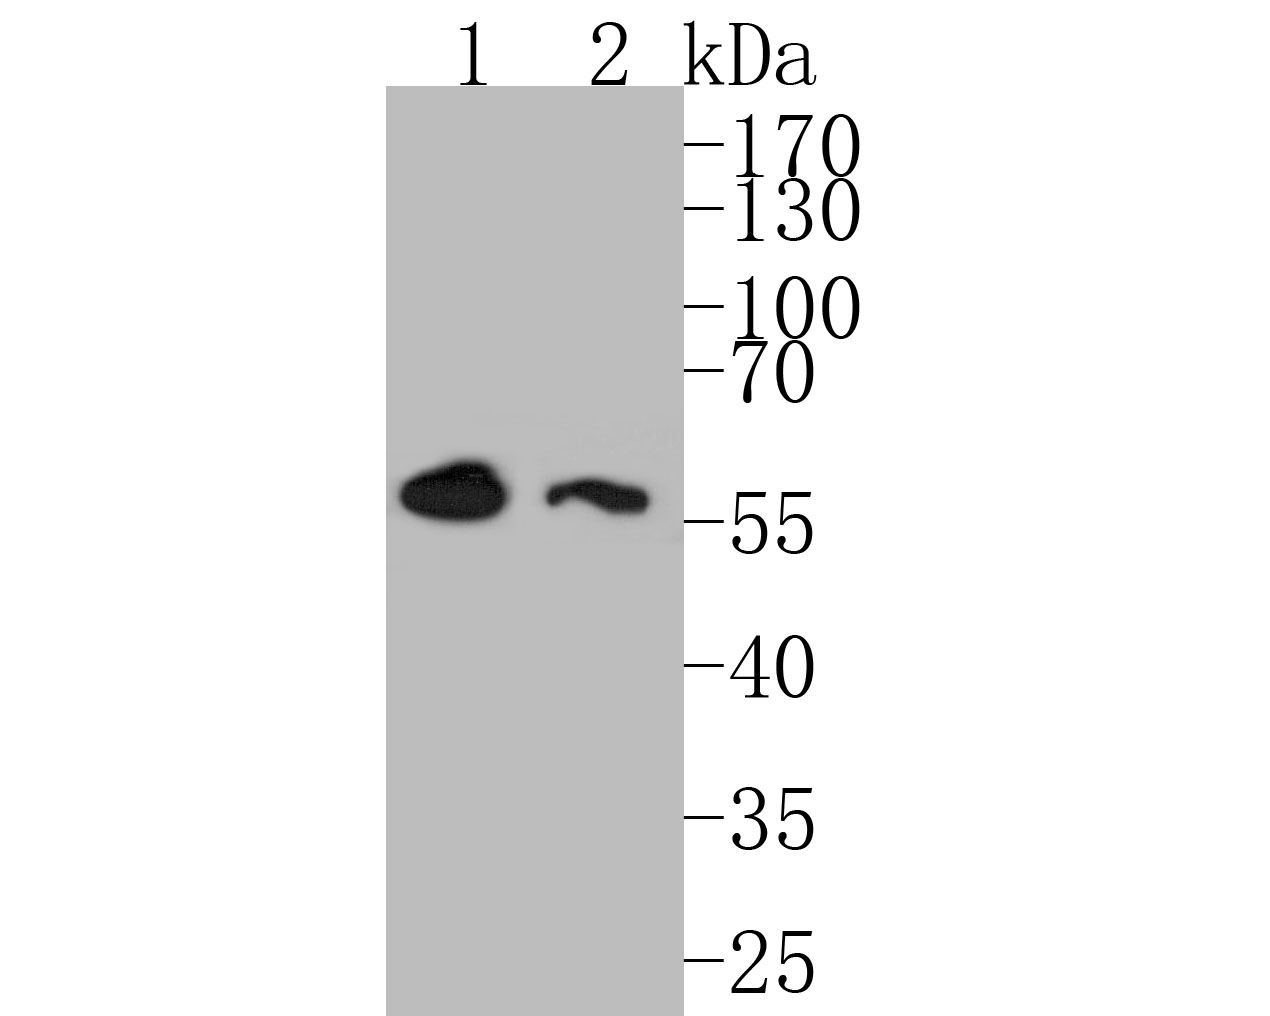 Western blot analysis of DOK1 on different lysates. Proteins were transferred to a PVDF membrane and blocked with 5% BSA in PBS for 1 hour at room temperature. The primary antibody (ET7110-75, 1/500) was used in 5% BSA at room temperature for 2 hours. Goat Anti-Rabbit IgG - HRP Secondary Antibody (HA1001) at 1:5,000 dilution was used for 1 hour at room temperature.<br /> Positive control: <br /> Lane 1: K562 cell lysate<br /> Lane 2: Rat skin tissue lysate